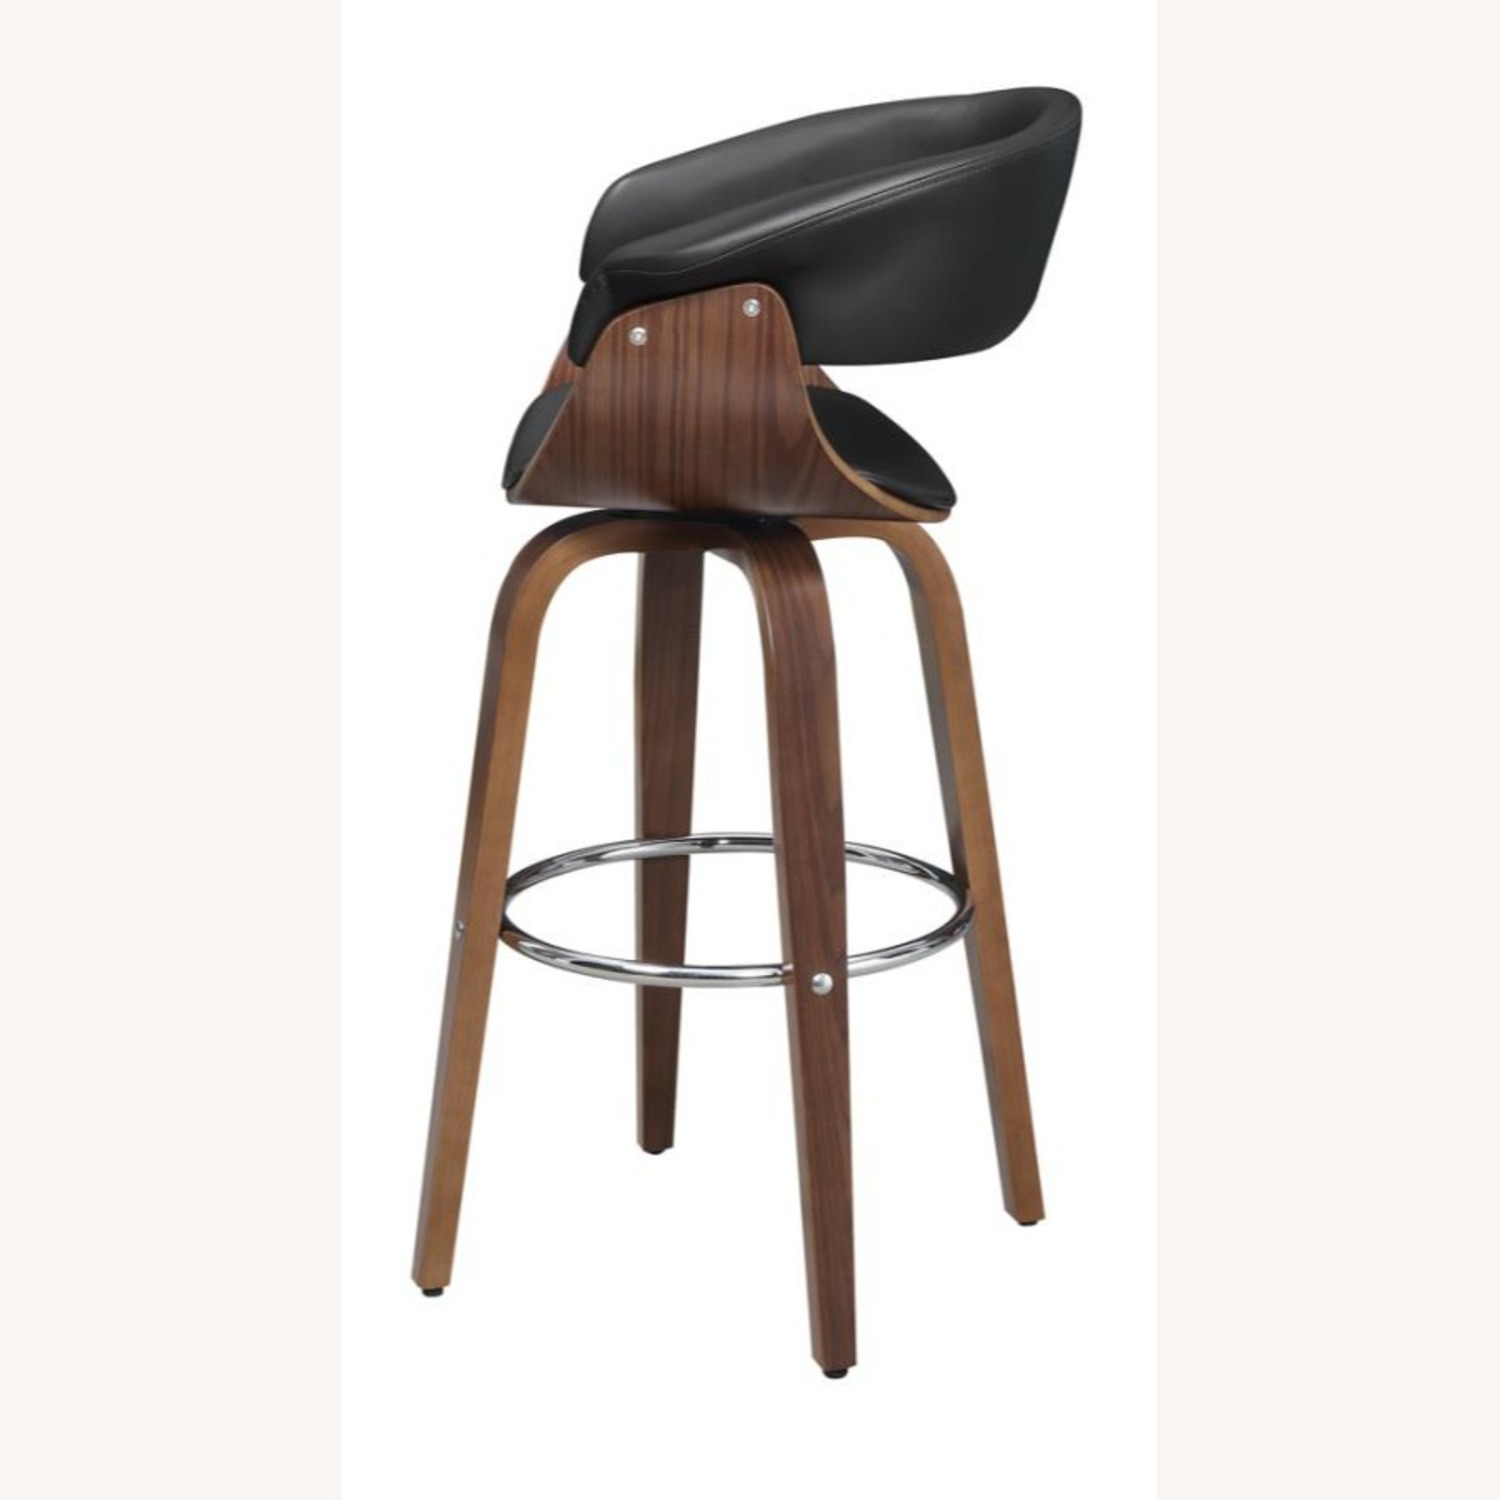 Swivel Bar Stool In Black Faux Leather Upholstery - image-2